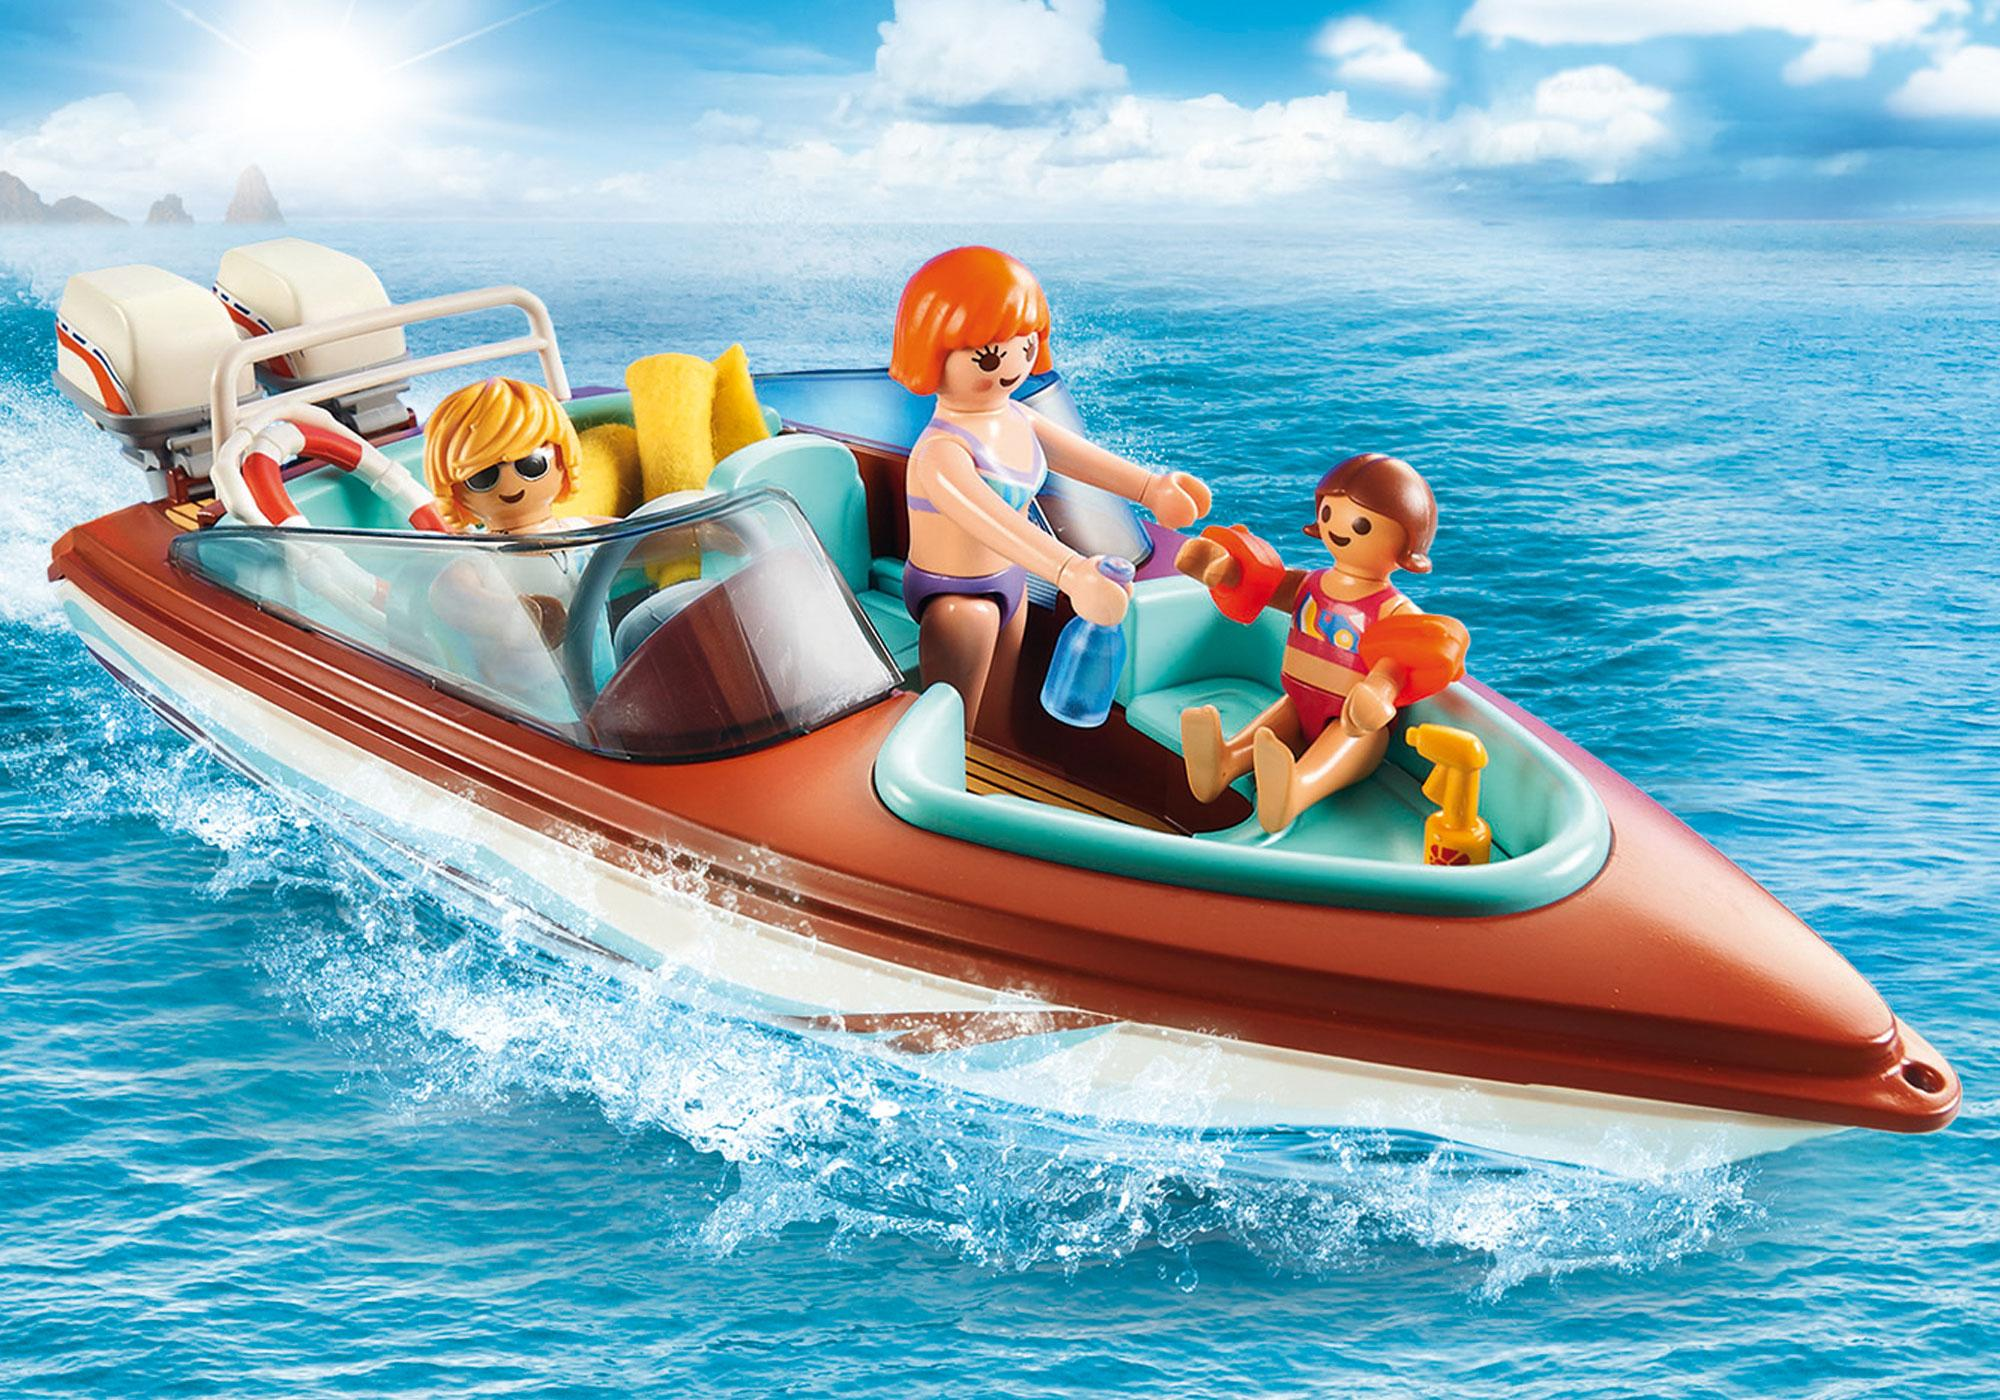 http://media.playmobil.com/i/playmobil/9428_product_extra2/Vacanciers avec vedette et moteur submersible